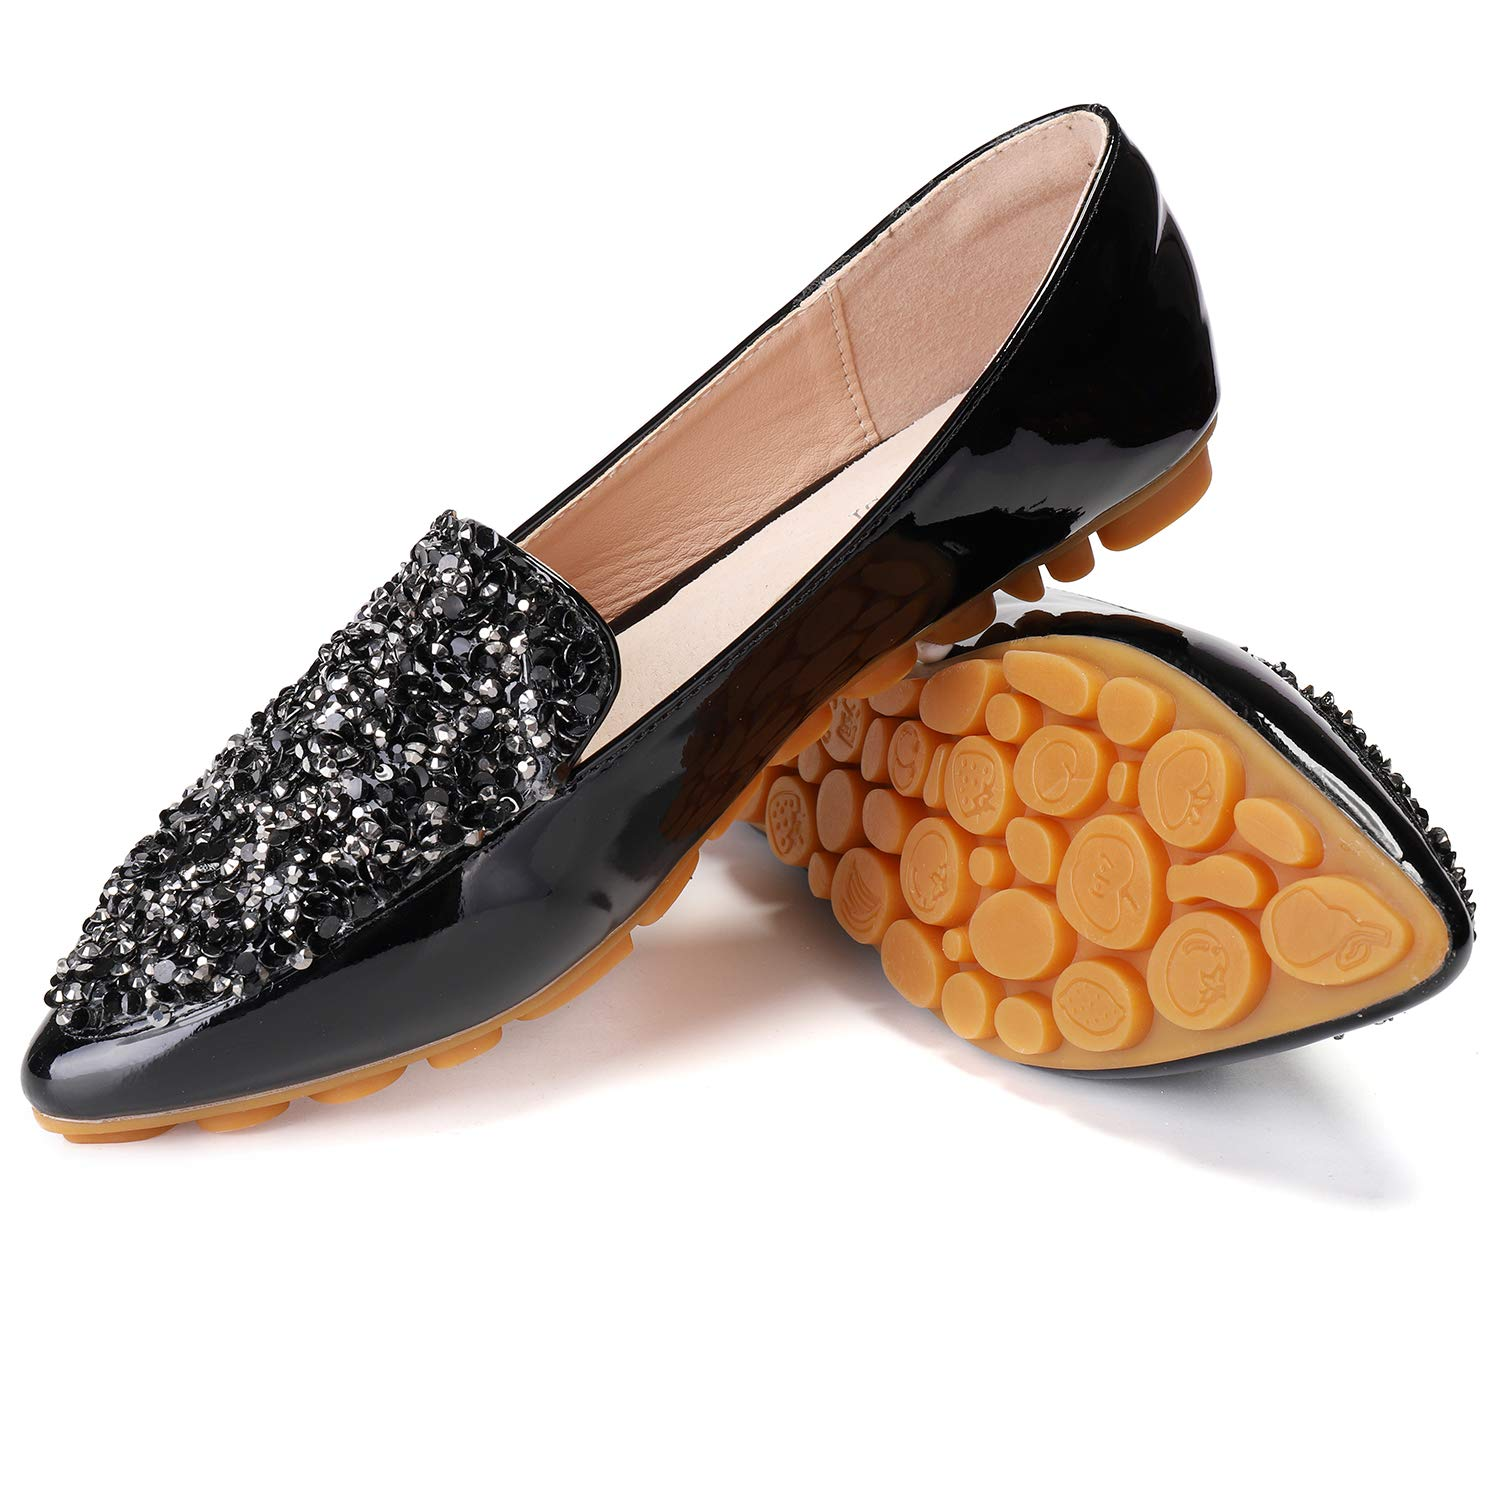 Cattle Shop Flats for Women Rhinestone Pointed Toe Sequins Glitter Loafers Flat Shoes